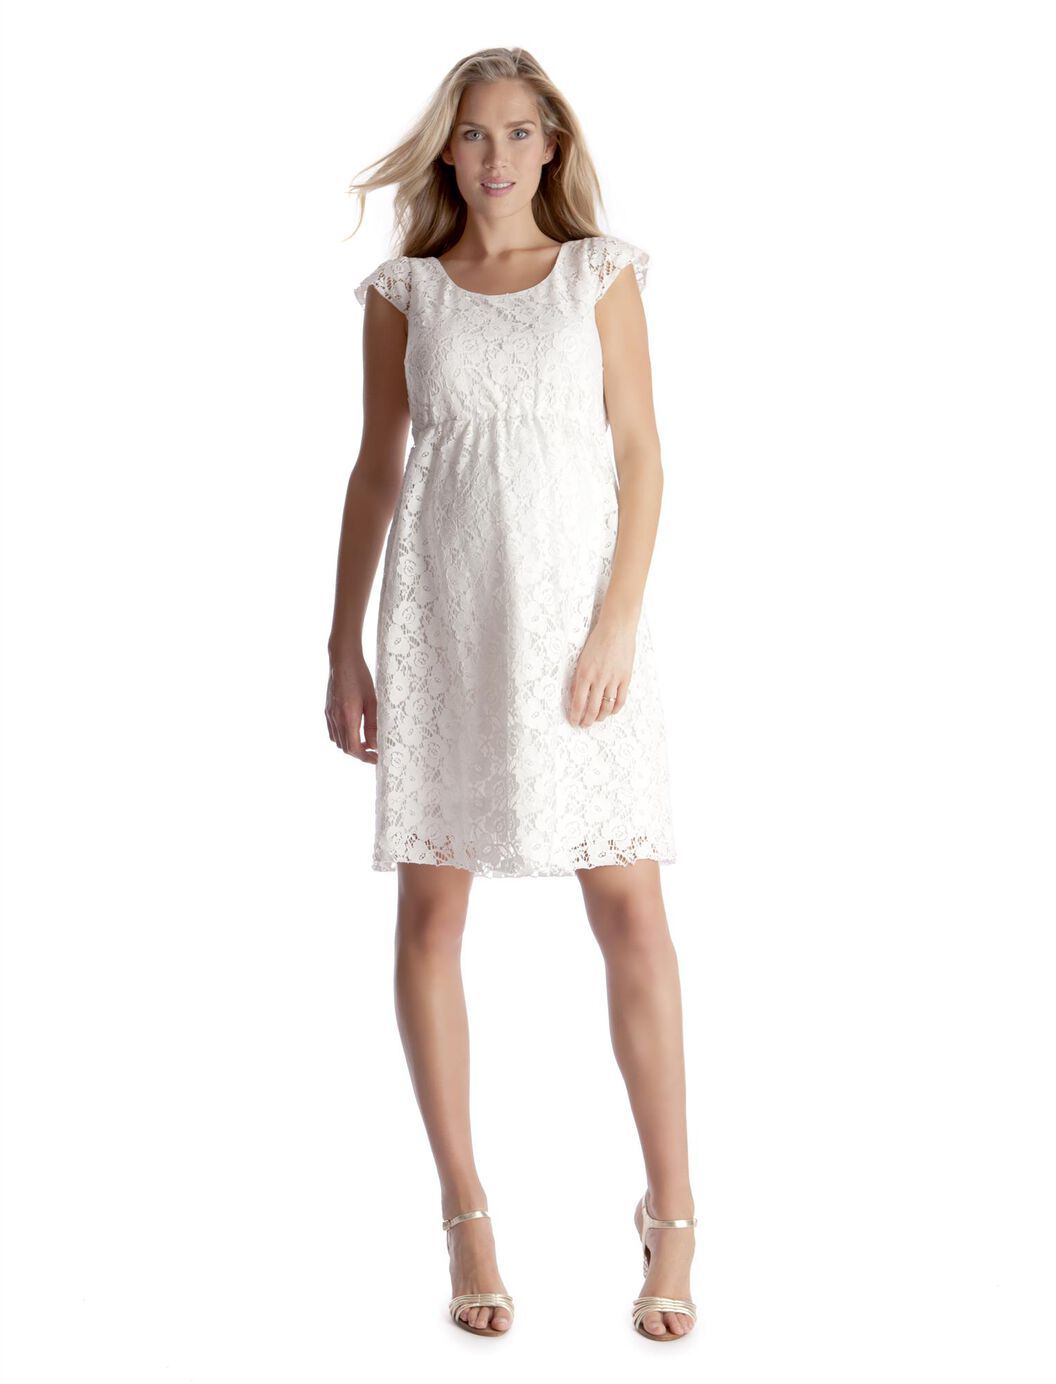 Seraphine lace maternity dress a pea in the pod maternity seraphine lace maternity dress white ombrellifo Choice Image